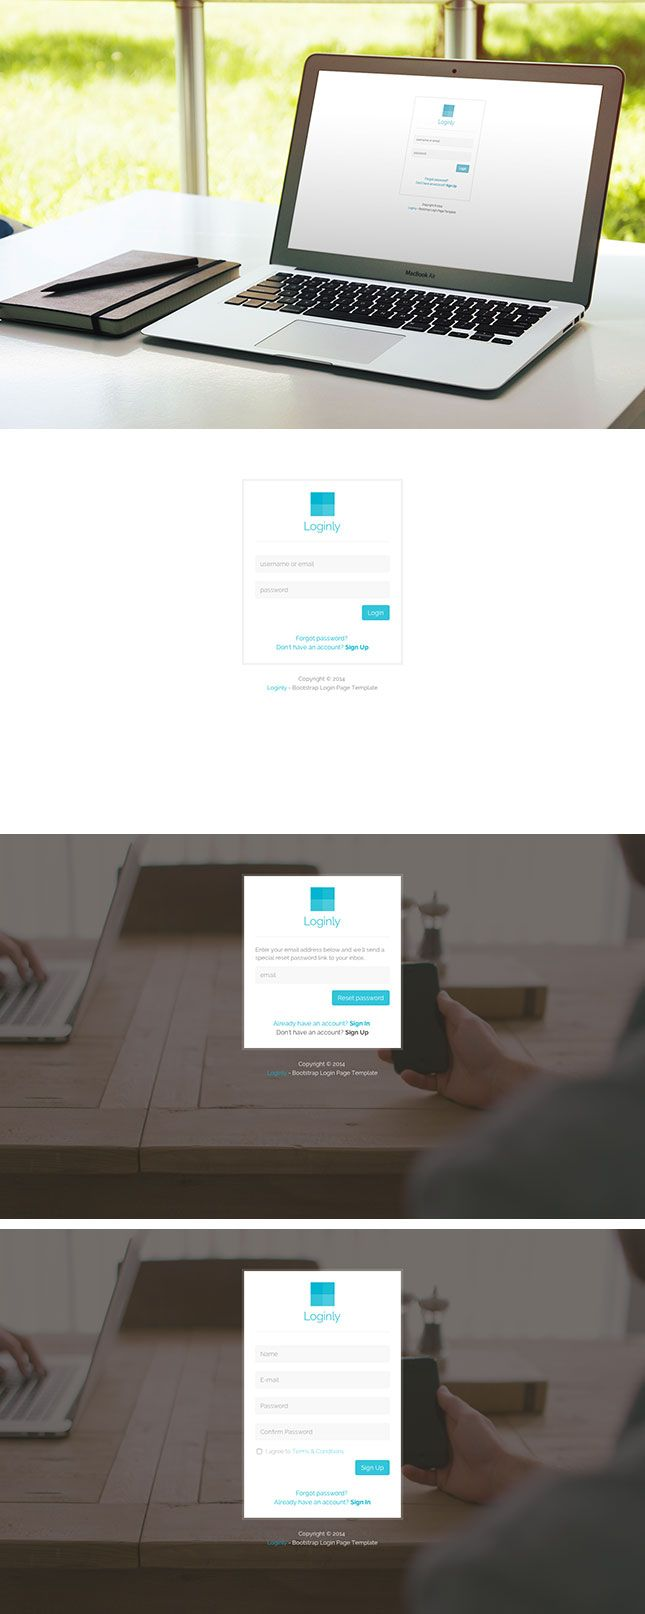 loginly free bootstrap login page template 5 form pinterest